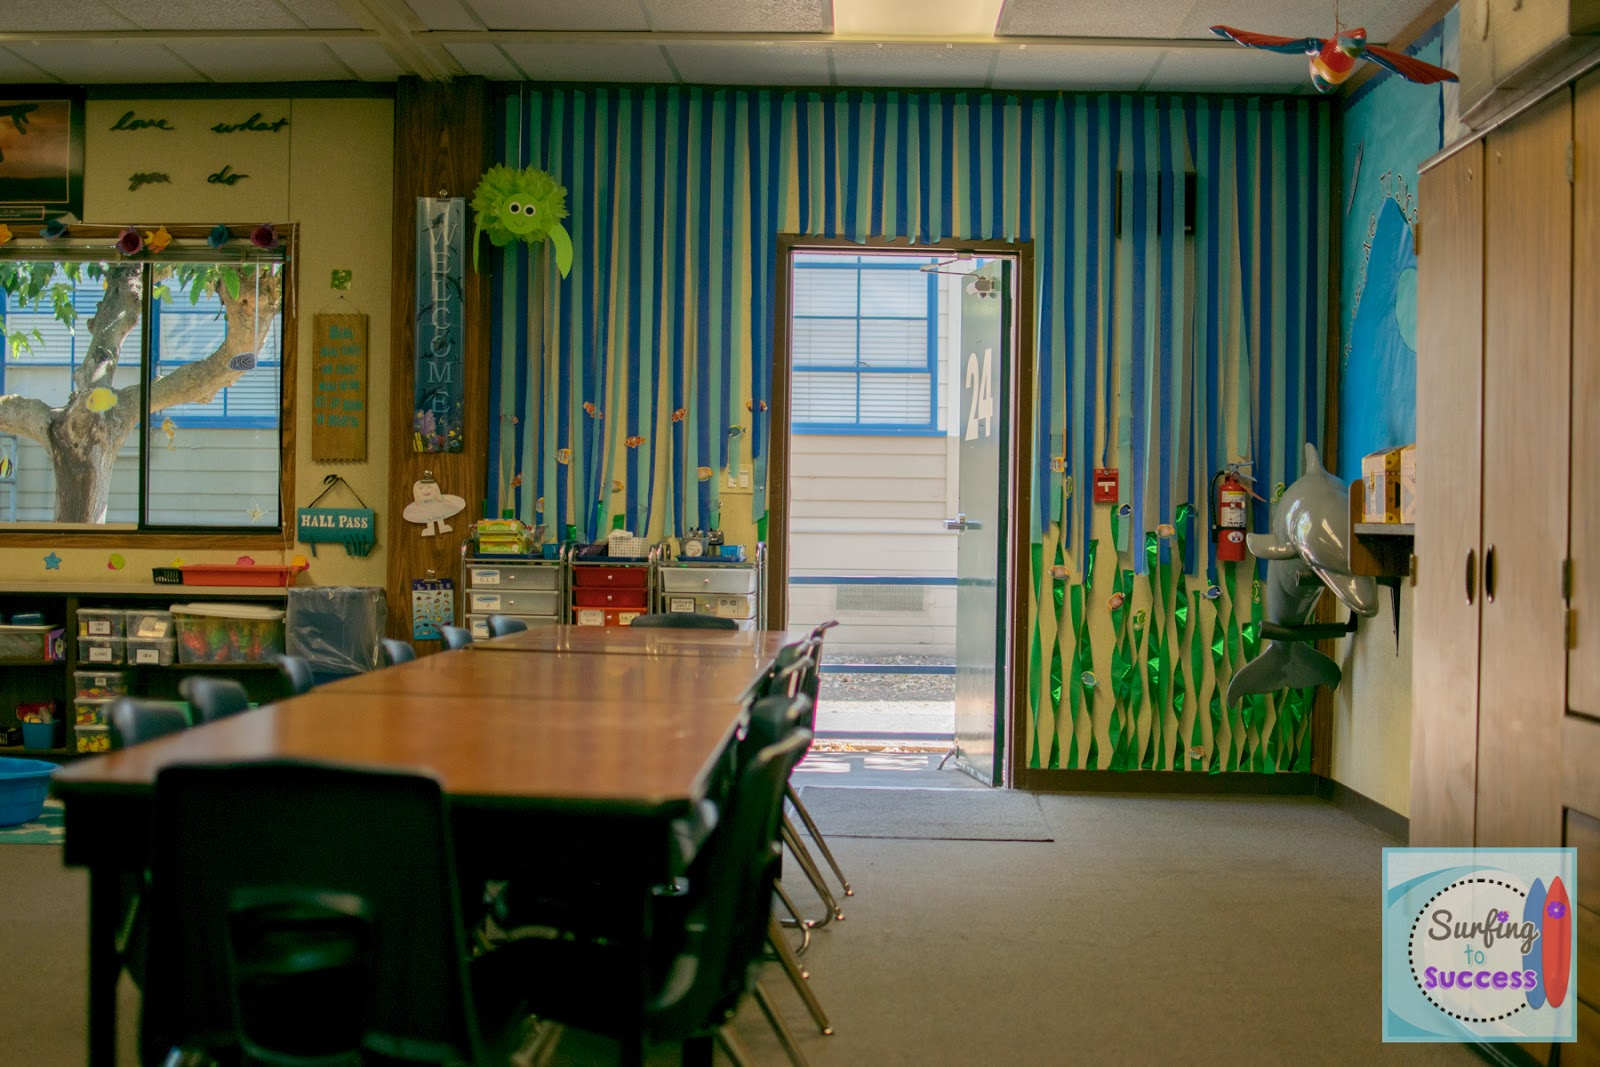 My Ocean Theme Classroom - Surfing to Success